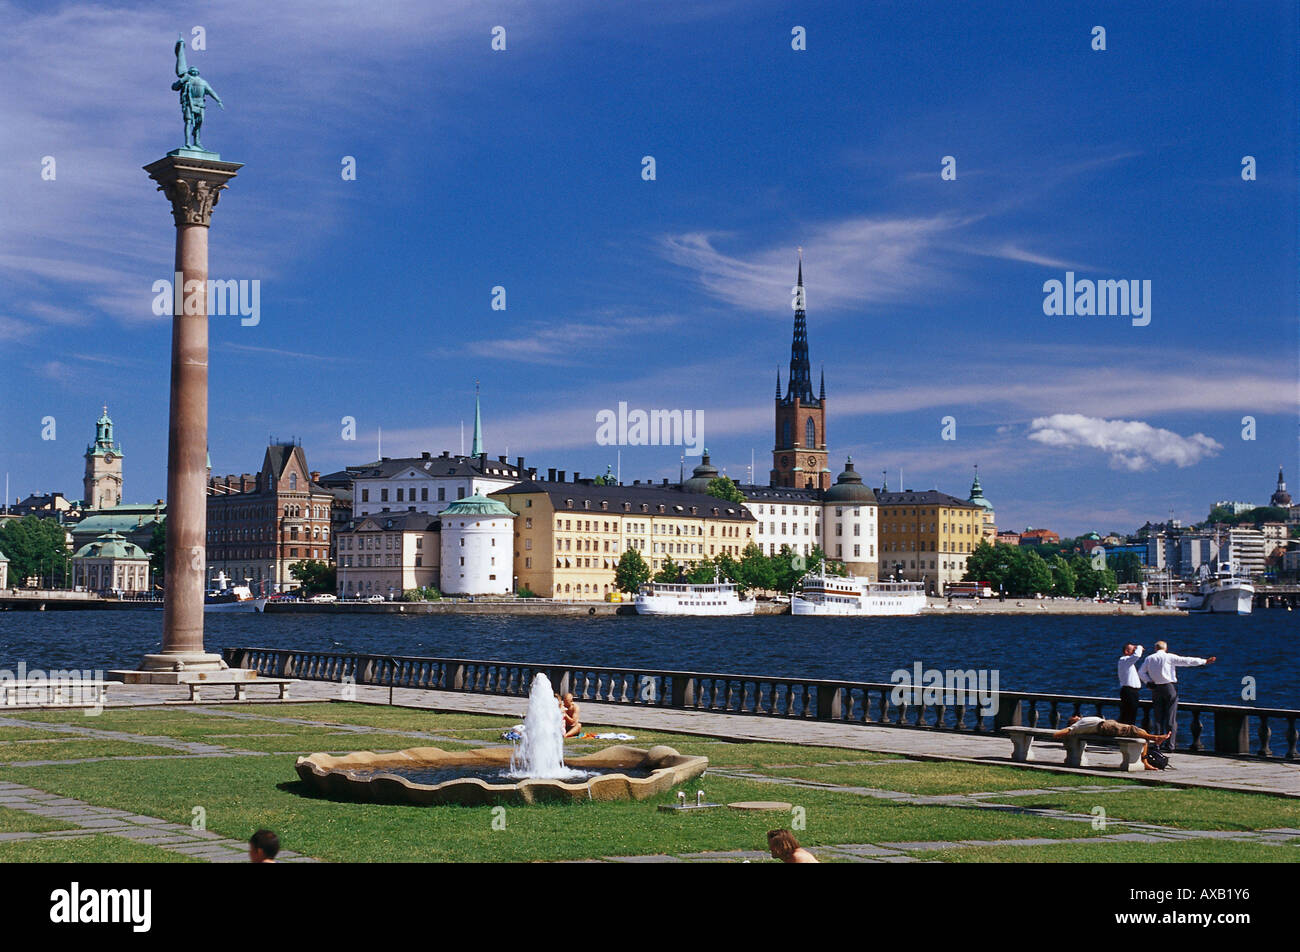 View to Riddarholmen and Stadhuset, Stockholm, Sweden - Stock Image